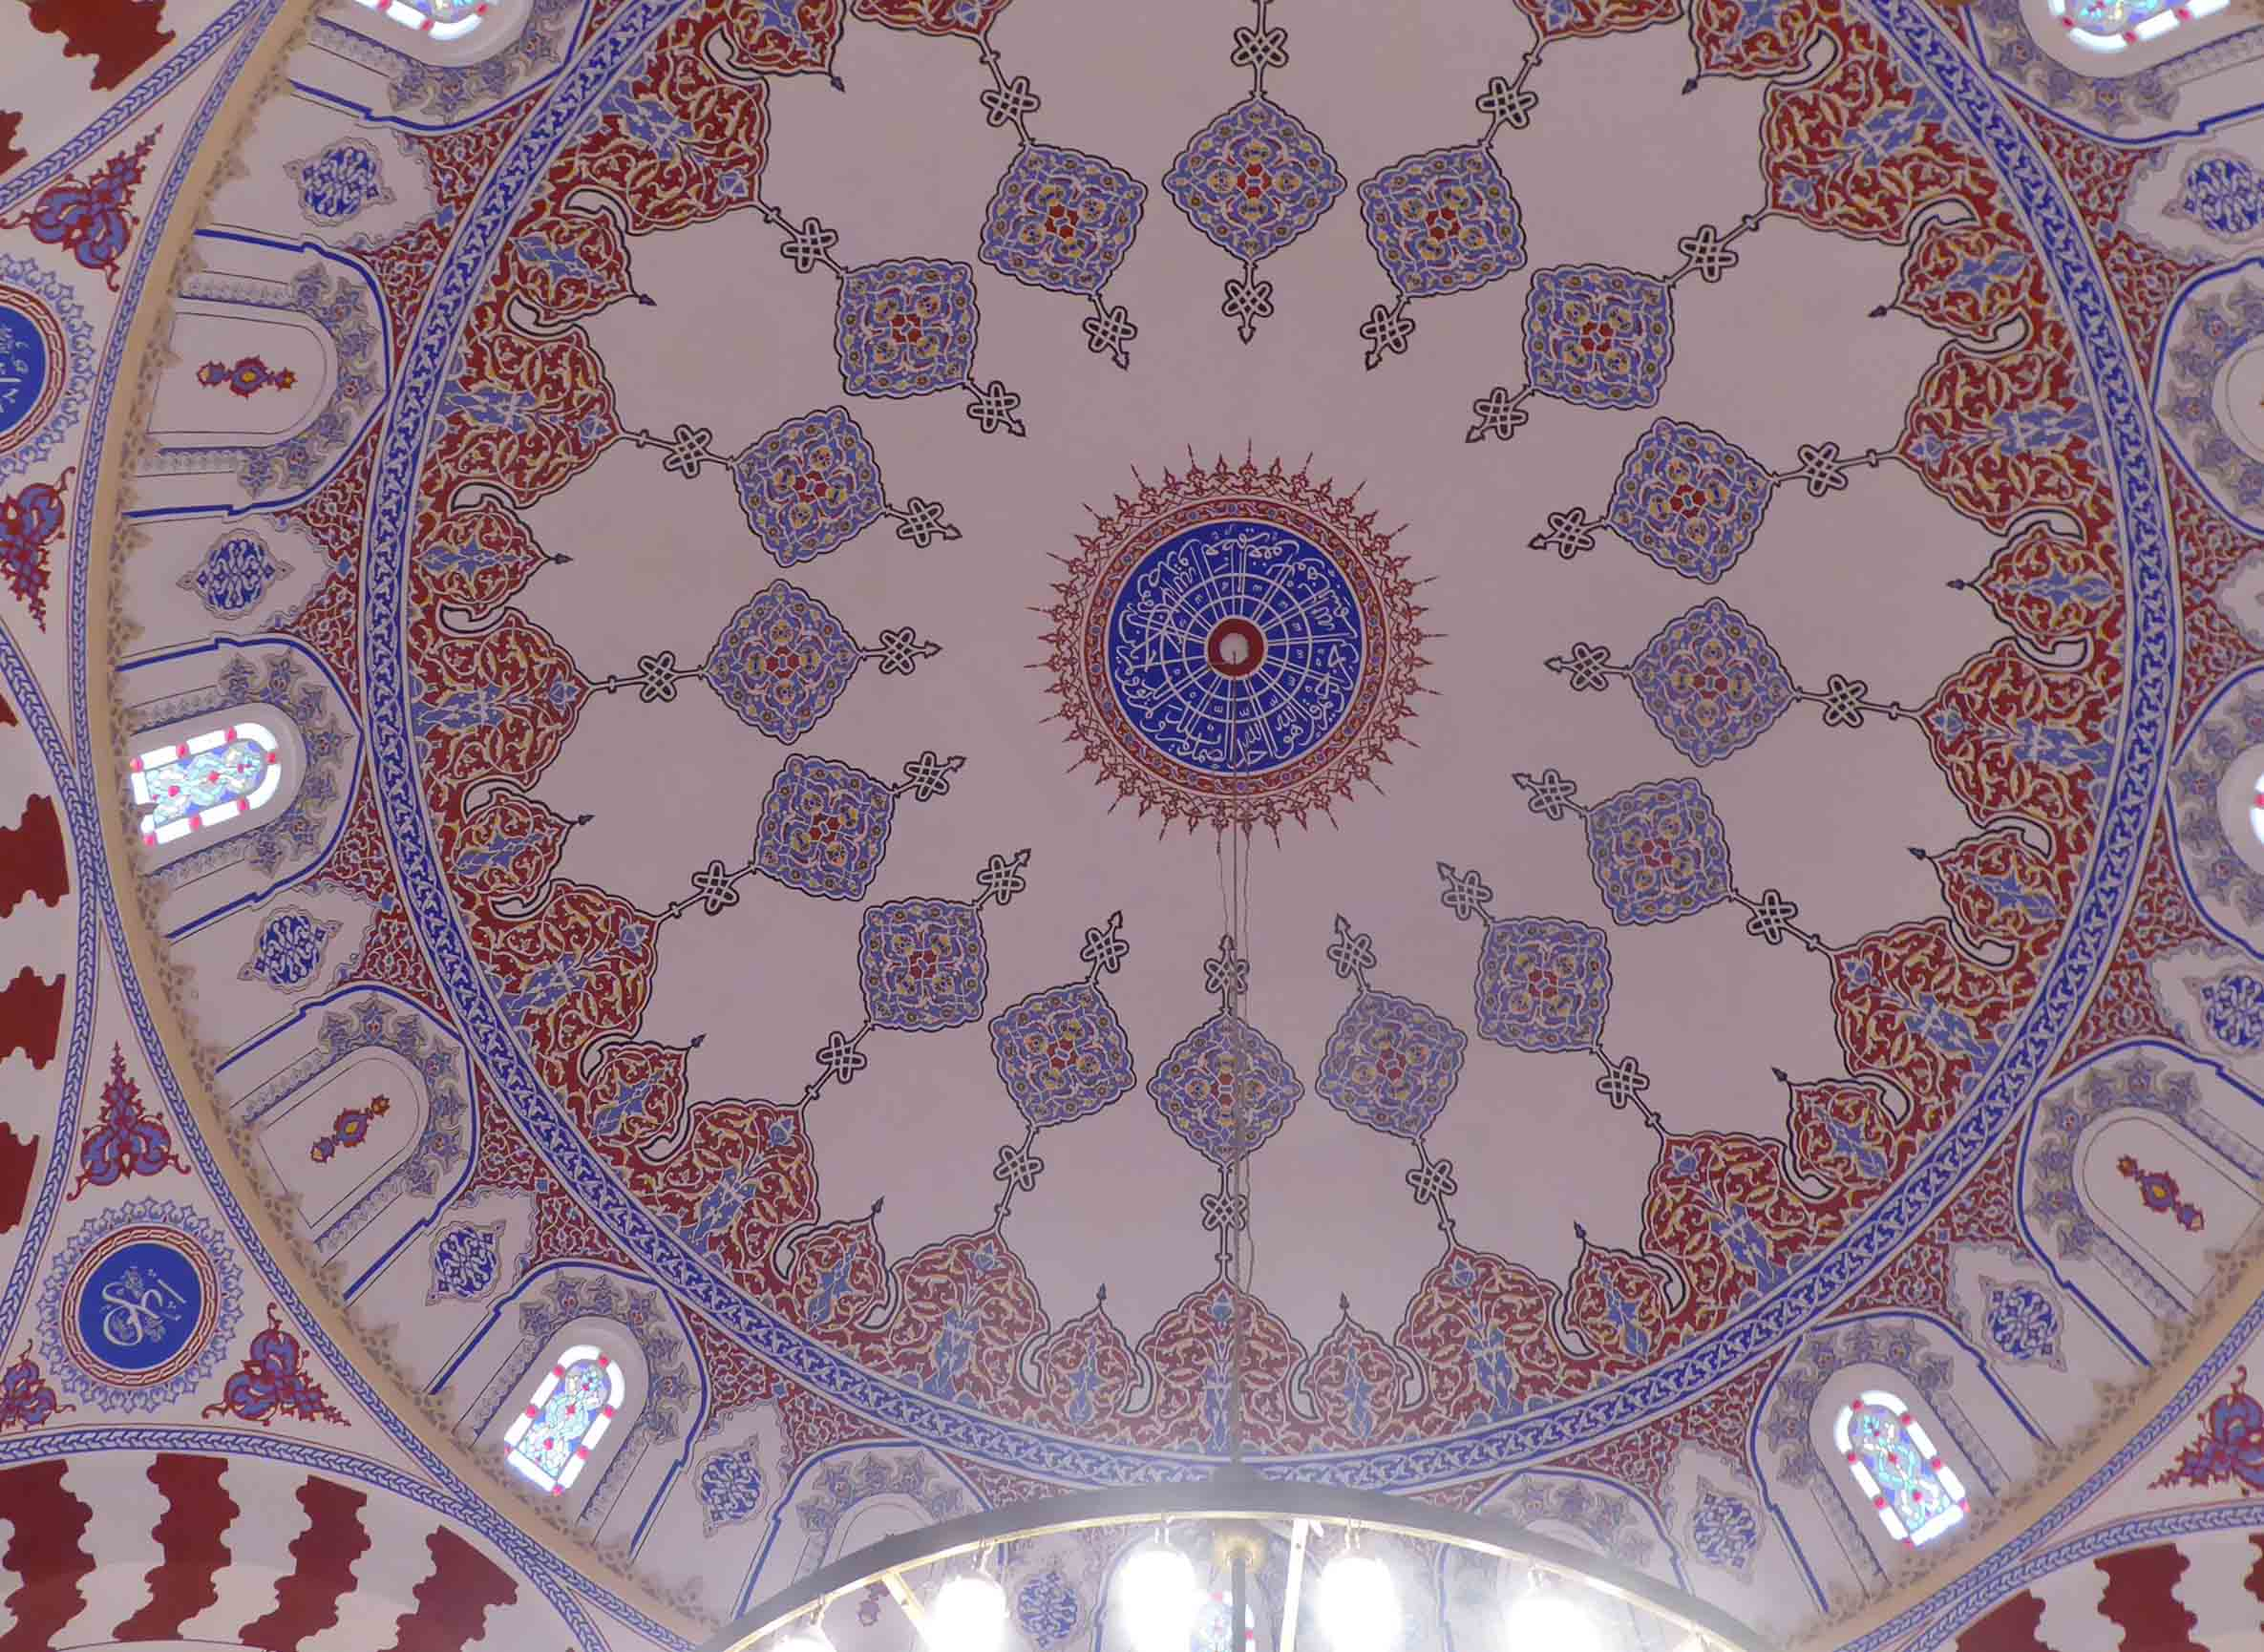 White dome decorated in blue and brown